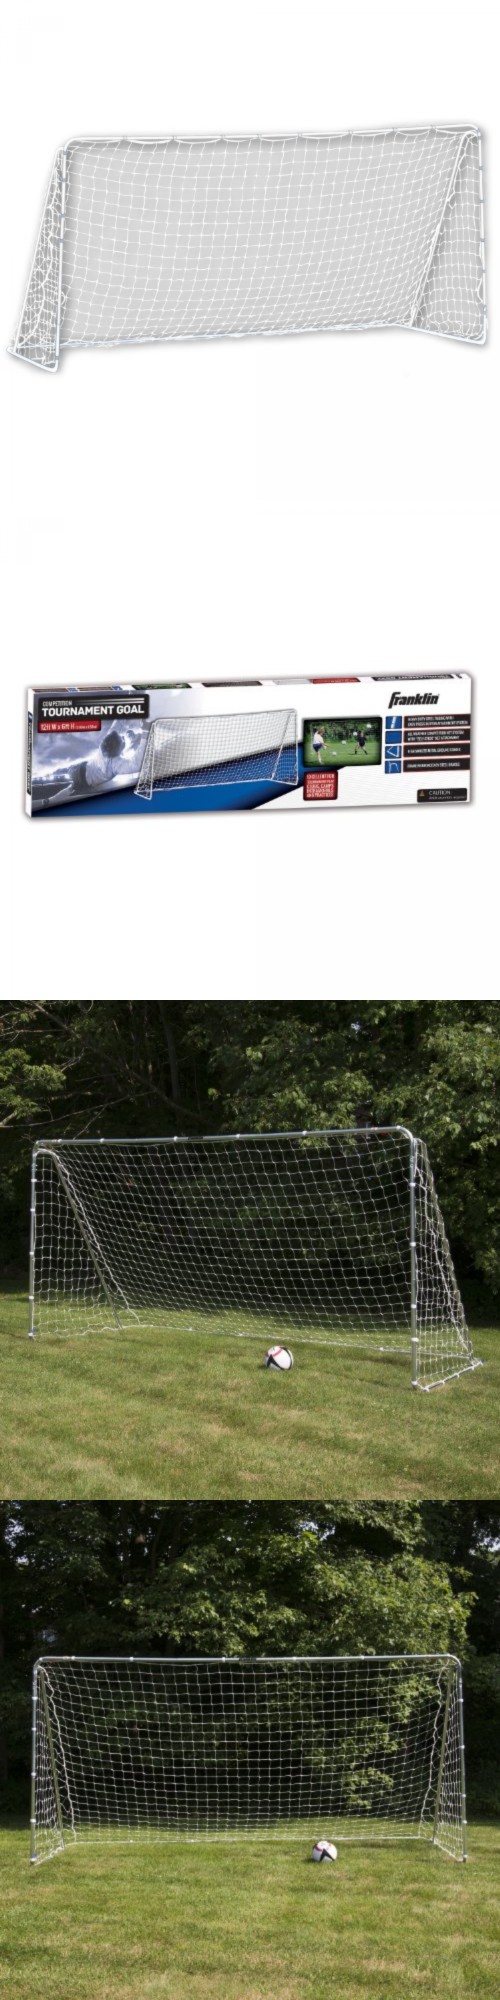 goals and nets 159180 sports soccer goal post competition